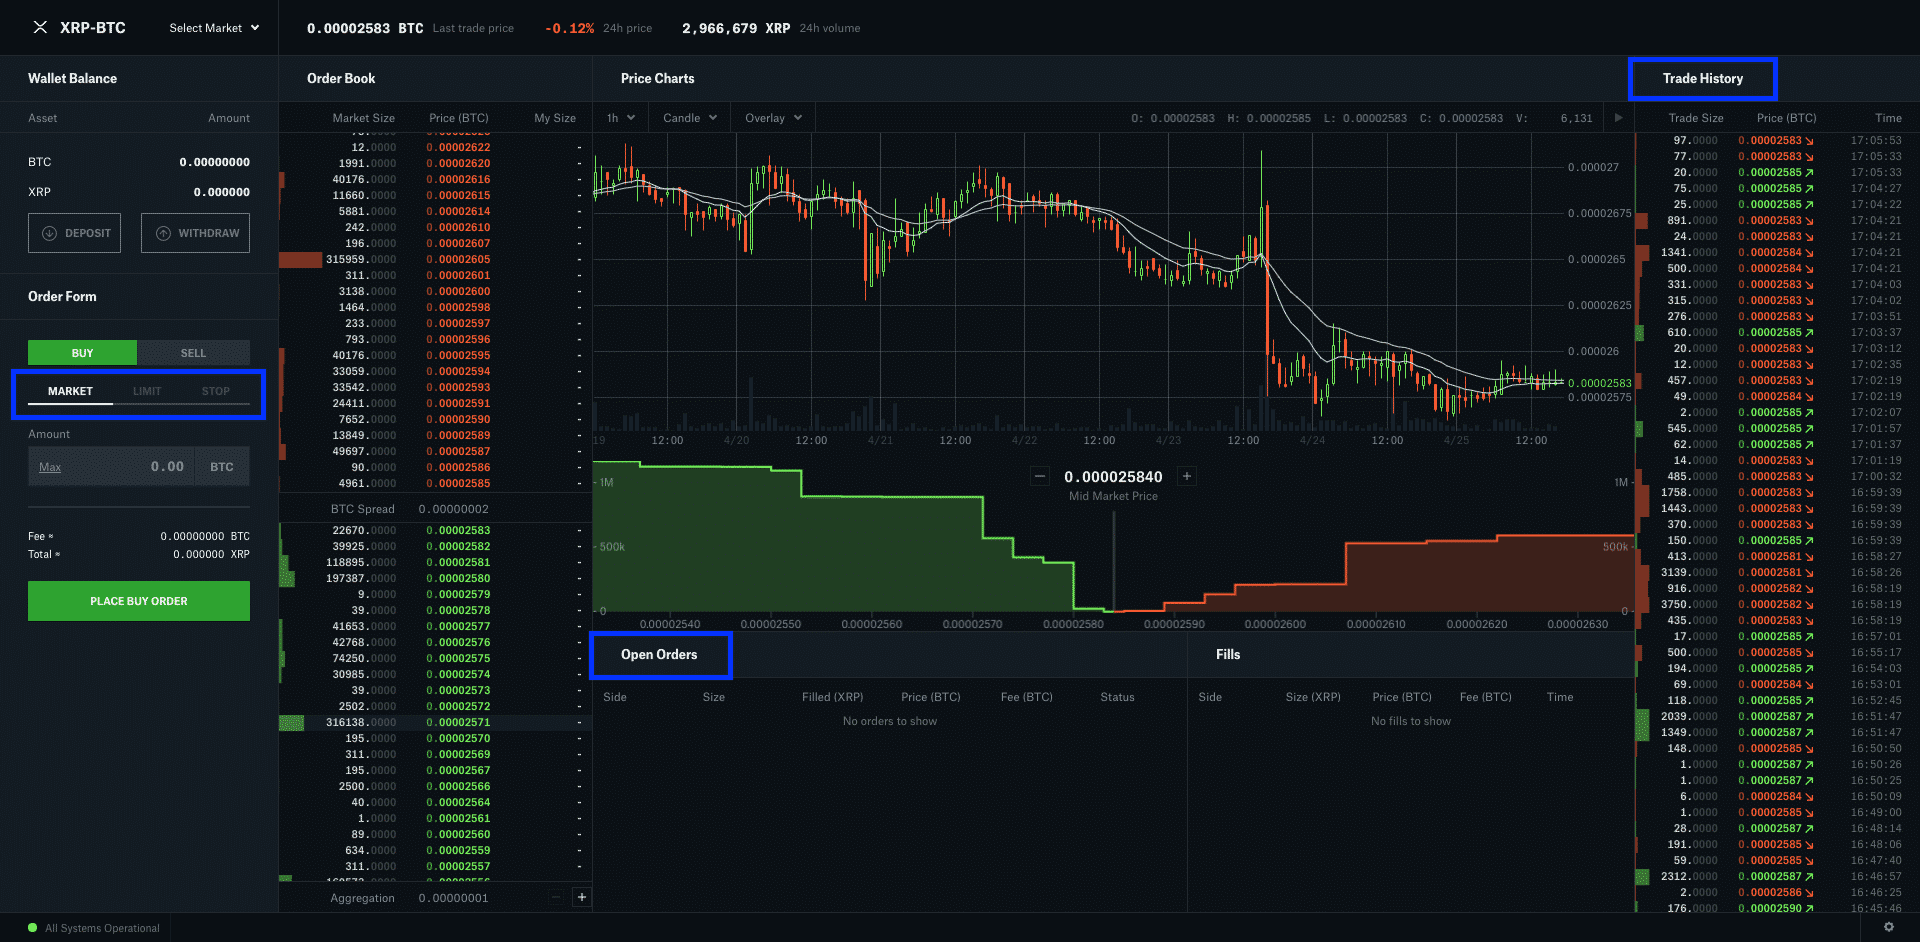 altcoin exchange reviews about coinbase trading interface